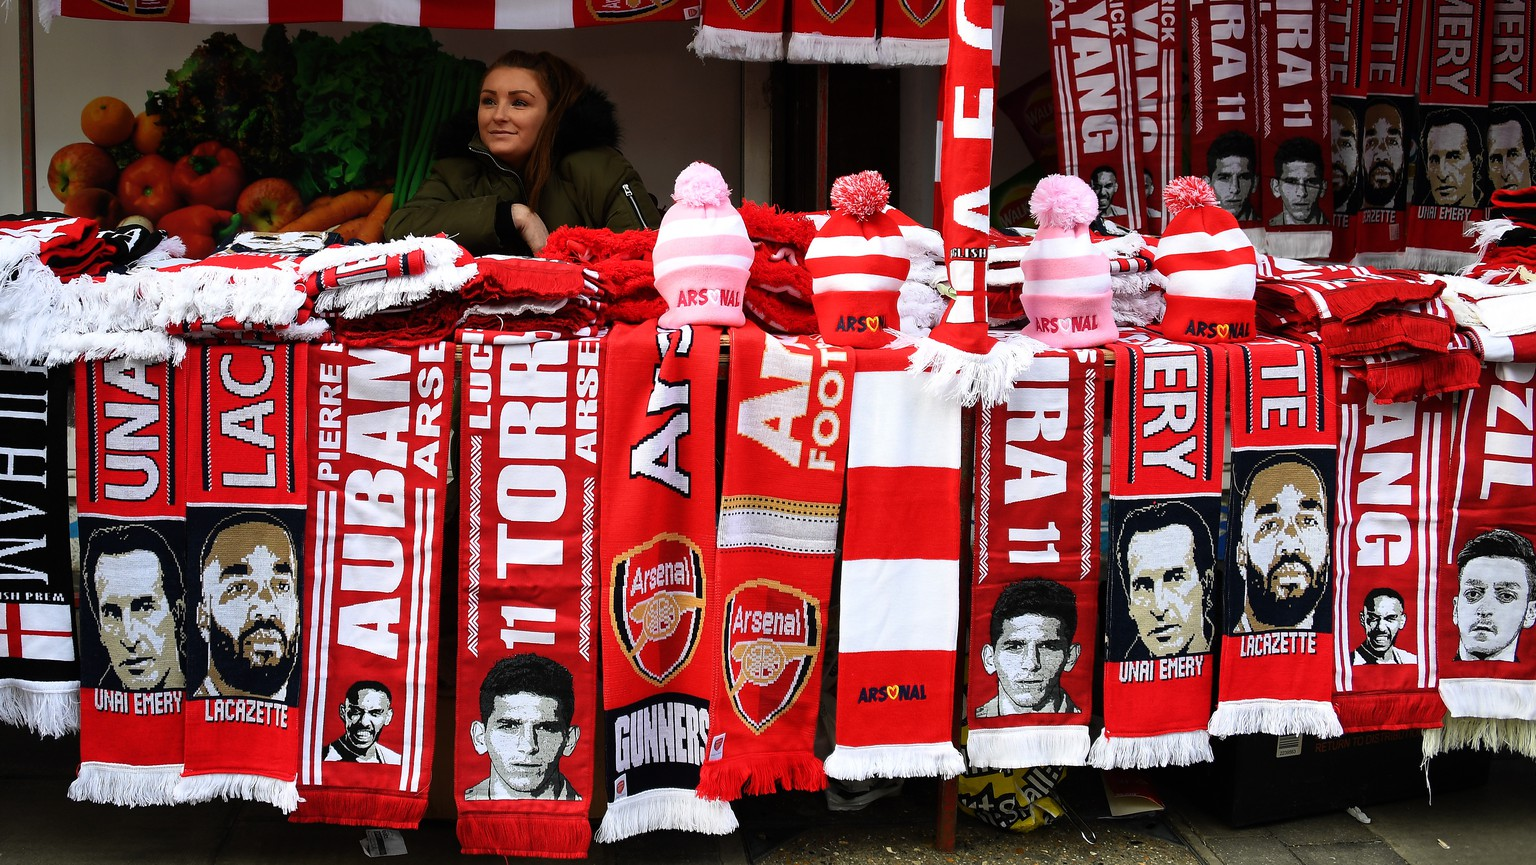 epa07256865 Arsenal scarves at a fan stall ahead of the English Premier League soccer match Arsenal vs Fulham at the Emirates Stadium in London, Britain, 01 January 2019.  EPA/ANDY RAIN EDITORIAL USE ONLY. No use with unauthorized audio, video, data, fixture lists, club/league logos or 'live' services. Online in-match use limited to 120 images, no video emulation. No use in betting, games or single club/league/player publications